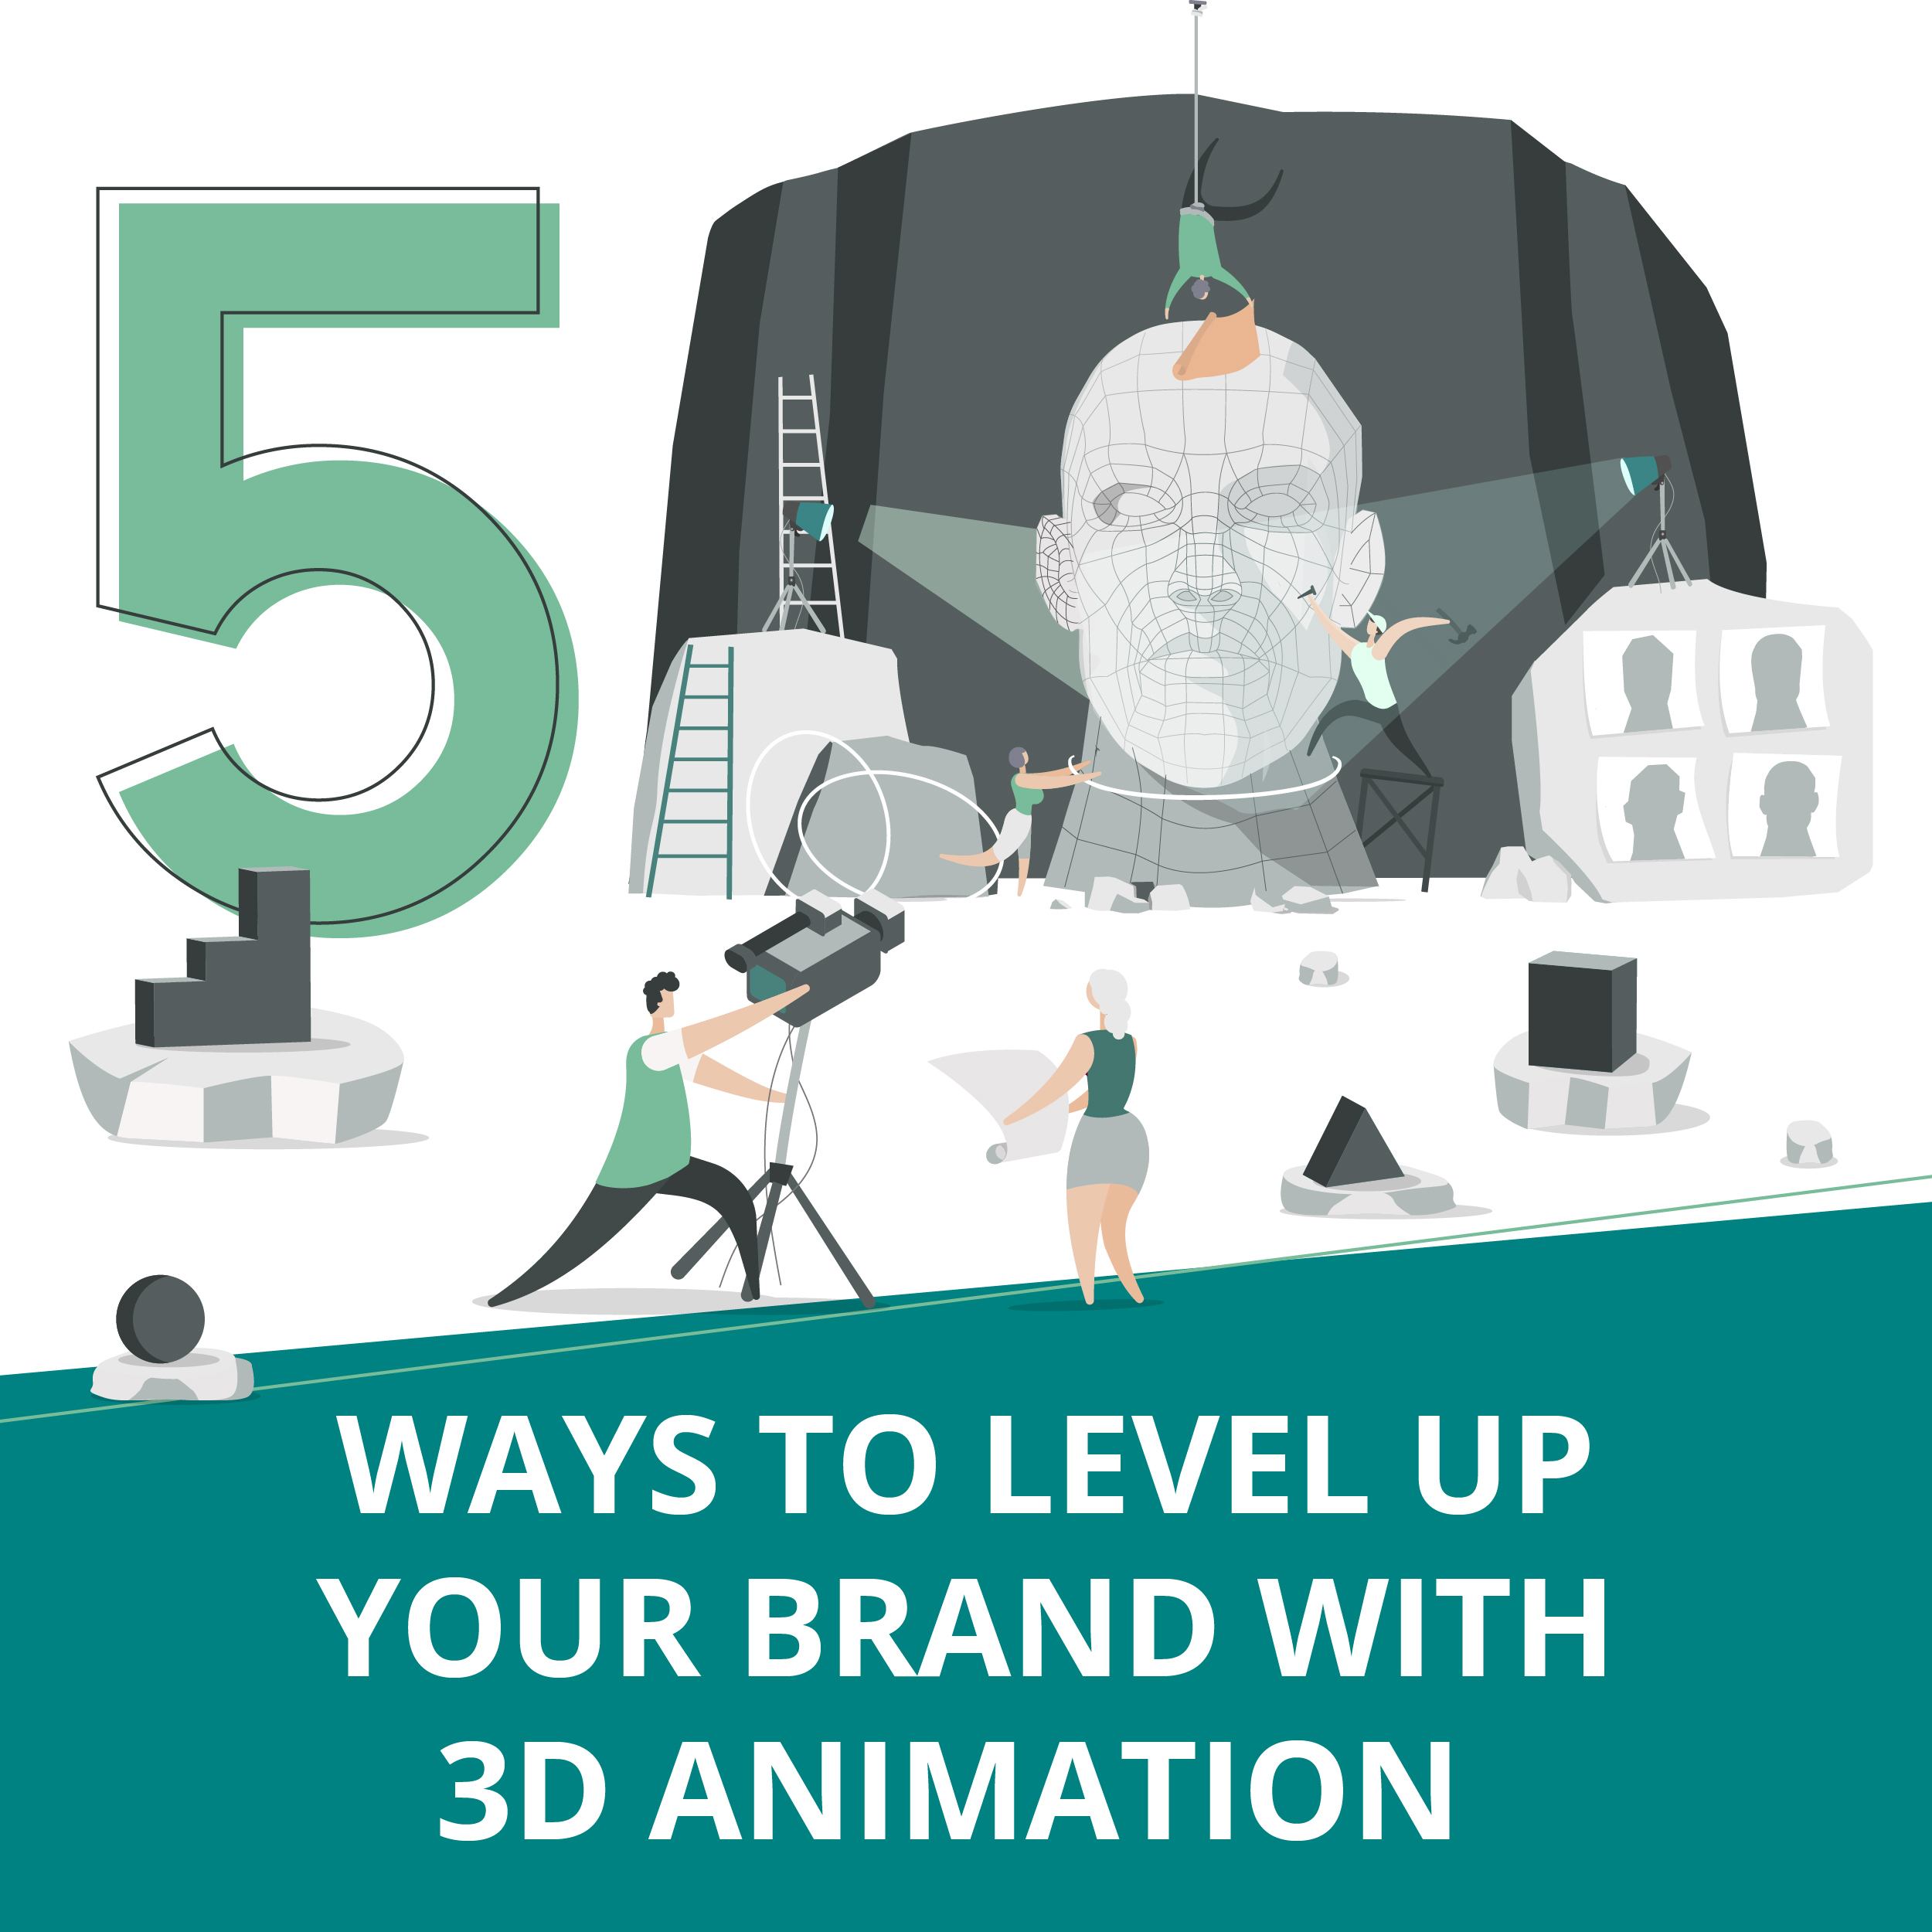 Ways To Level UpYour Branding With 3D Animation